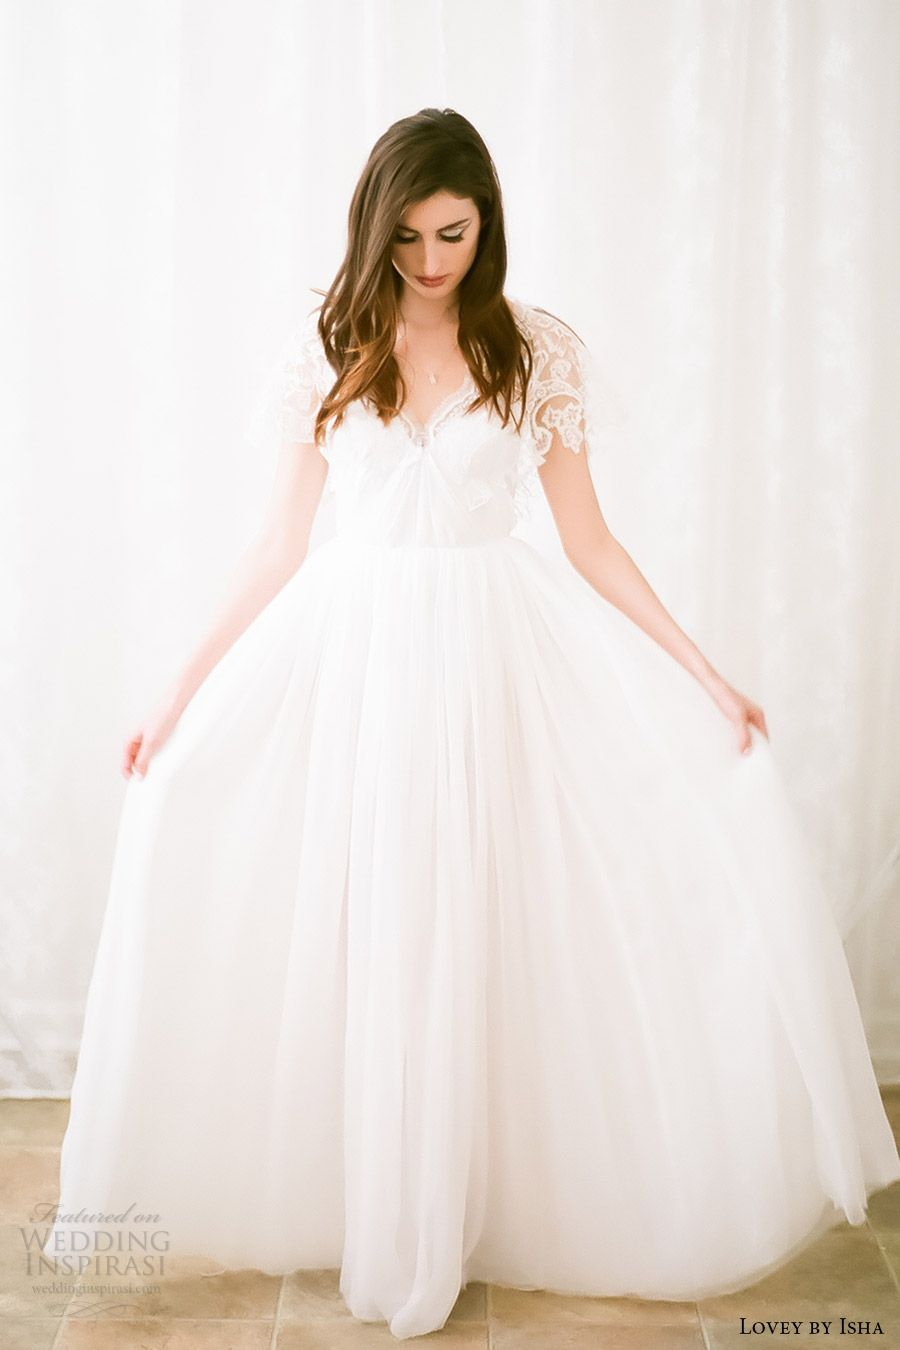 Lovey by isha spring wedding dresses wedding dresses